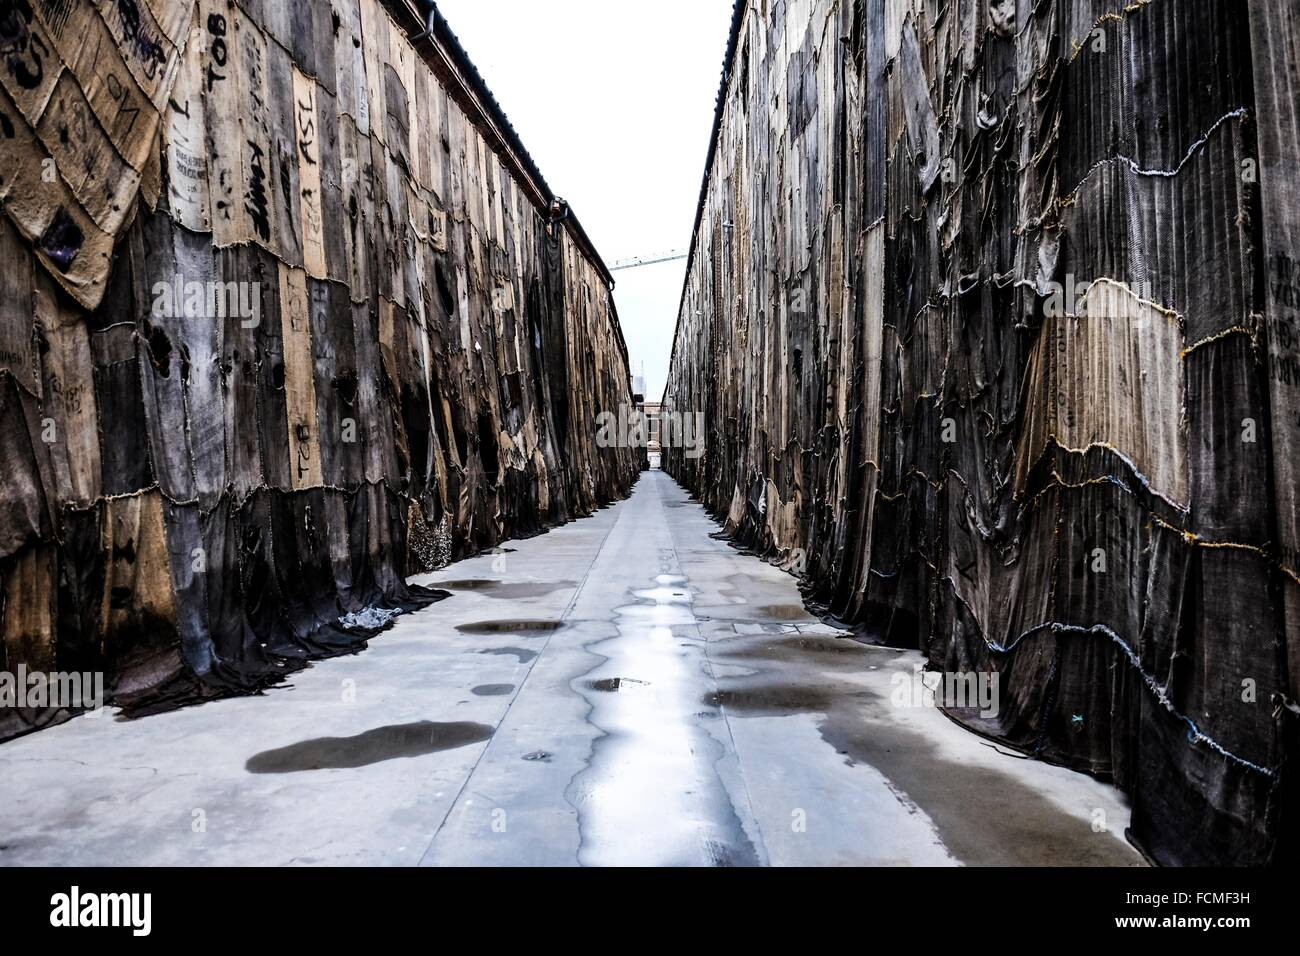 Street covered with jute sacks in Venice, Italy, Europe. - Stock Image